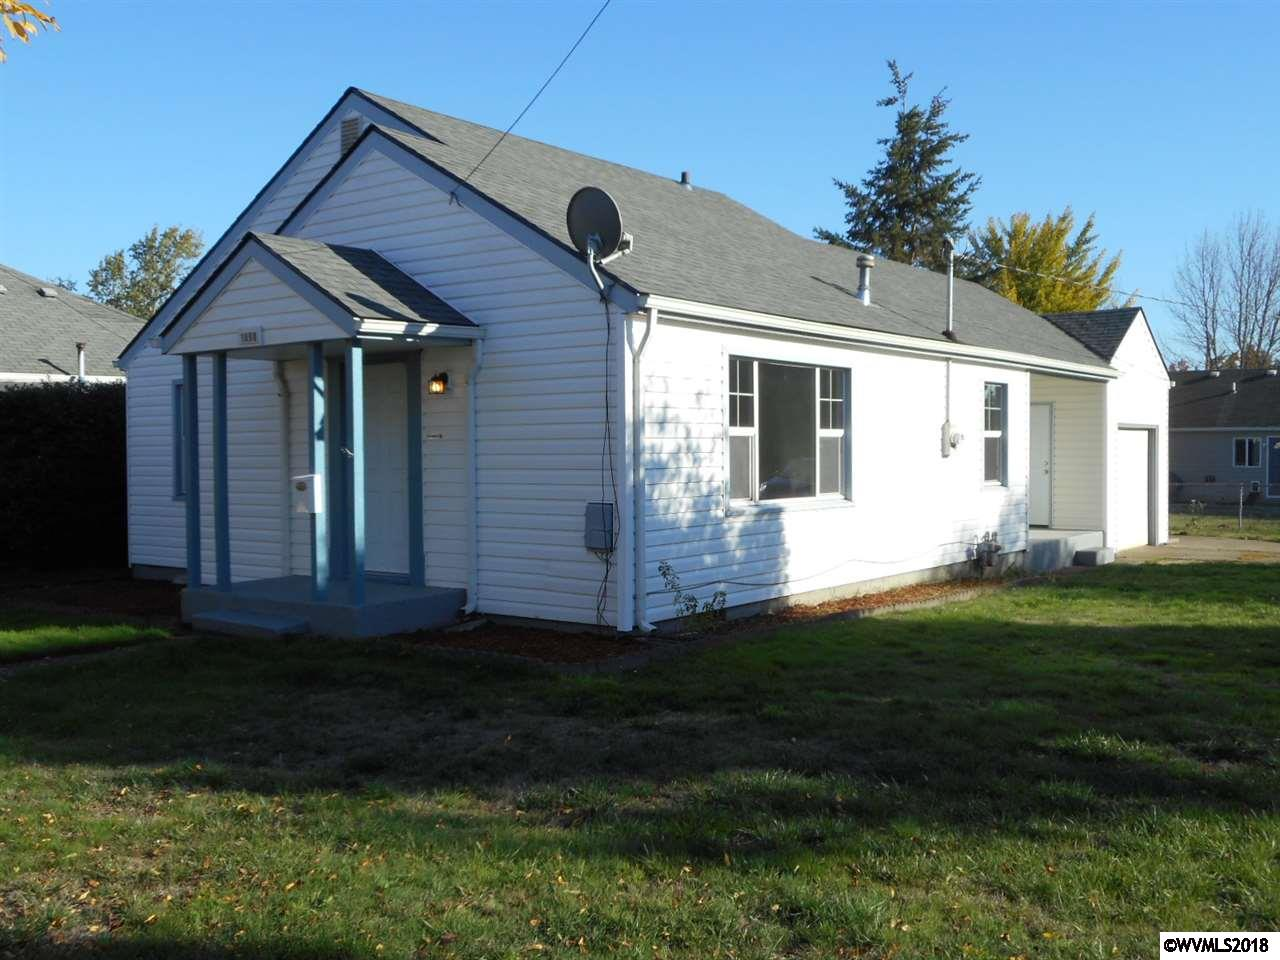 Welcome Home! 2BR/1BA/978SF on .11 acre corner lot in great SW neighborhood, just minutes to everything! Many updates including new roof/paint/fixtures/flooring, remodeled kitchen w/new appliances, remodeled bath & refinished HW floors. Nice sized rooms w/an easy flowing floor plan, GFA & huge inside utility/mudroom w/ample storage. Outside boasts easy maintenance vinyl siding & windows, UGS, 2 cvd porches & partially fenced yard w/RV pad & room for your toys! Seller is licensed Real Estate Broker in OR.